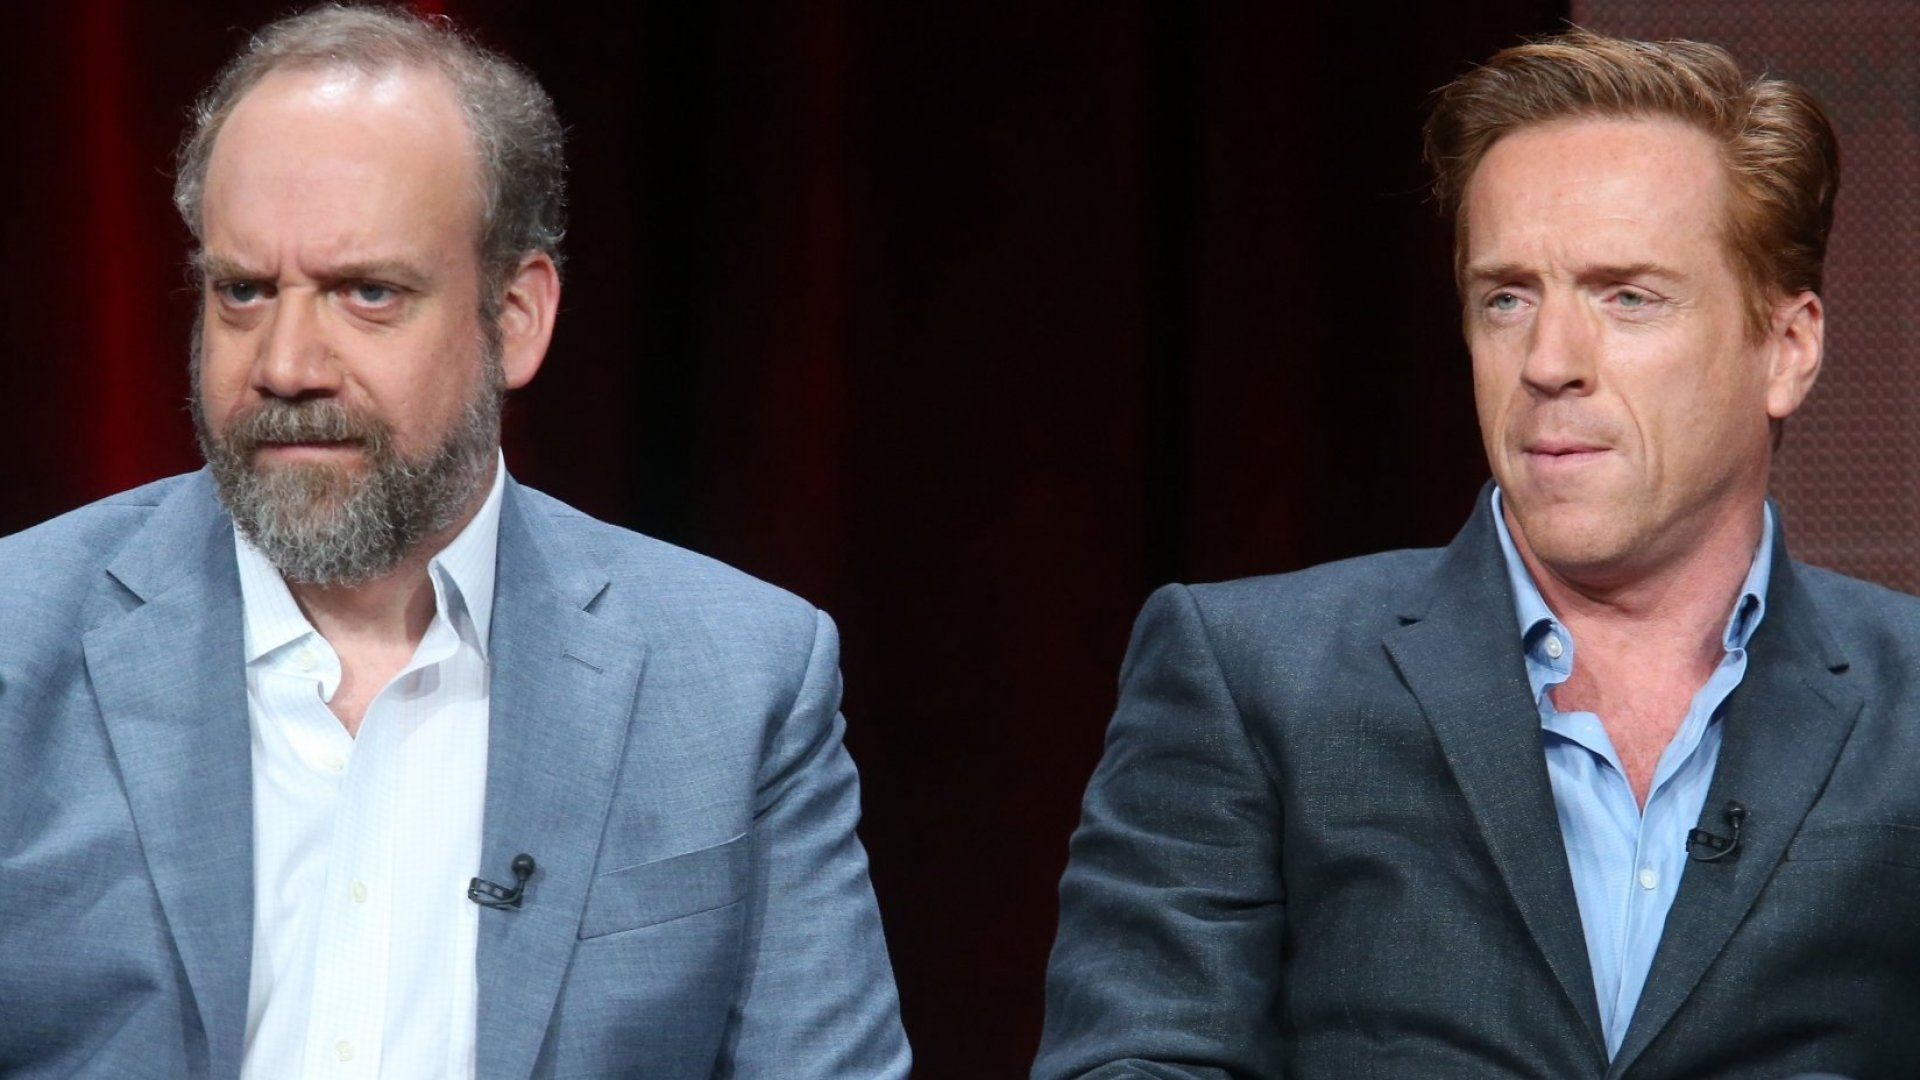 10 Insightful Quotes (and Great Business Lessons) From 'Billions'